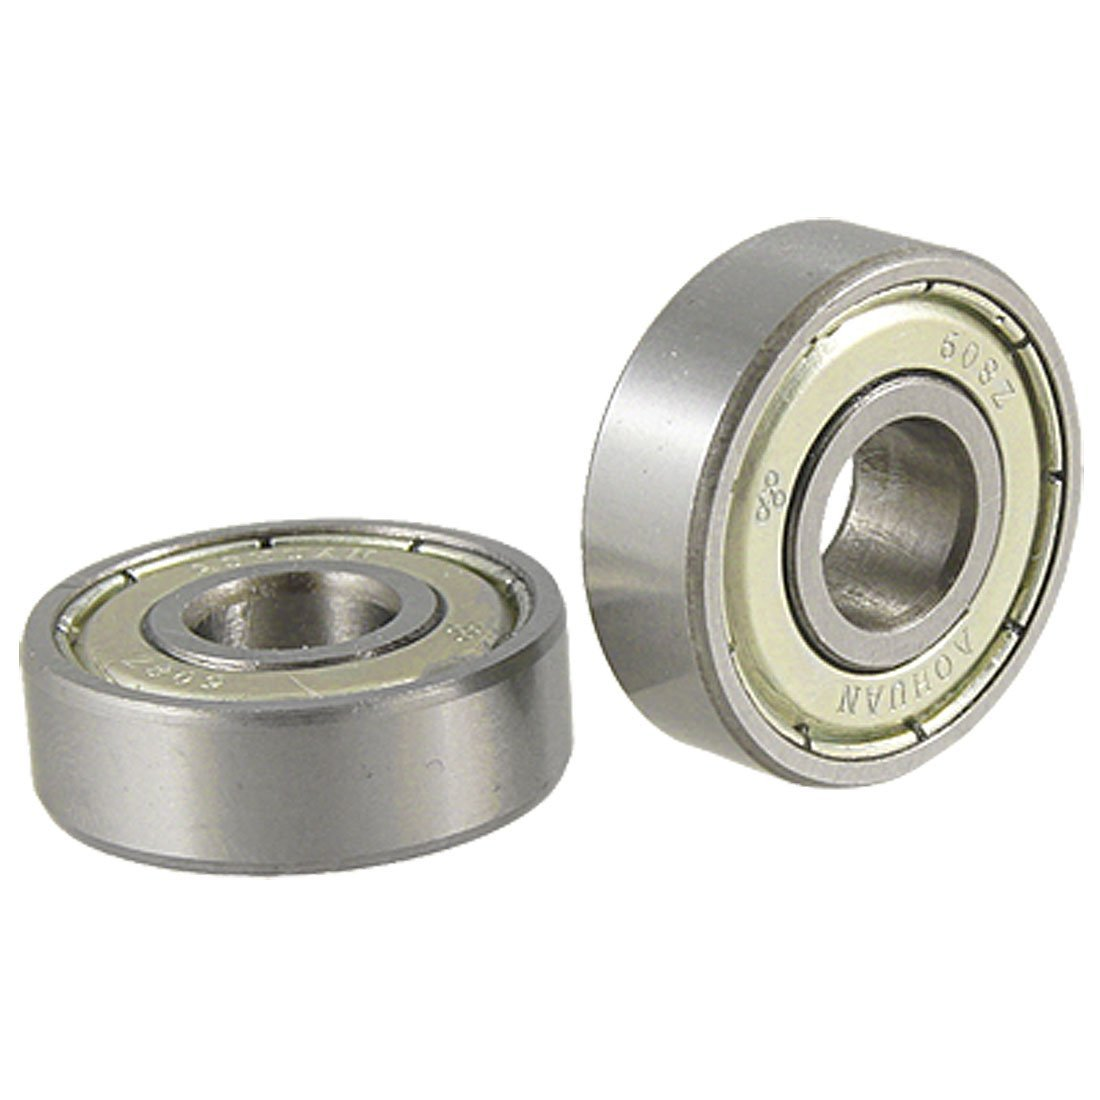 THGS  2 pcs Single Shielded 608Z Miniature Deep Groove Ball Bearings gcr15 6036 180x280x46mm high precision deep groove ball bearings abec 1 p0 1 pcs